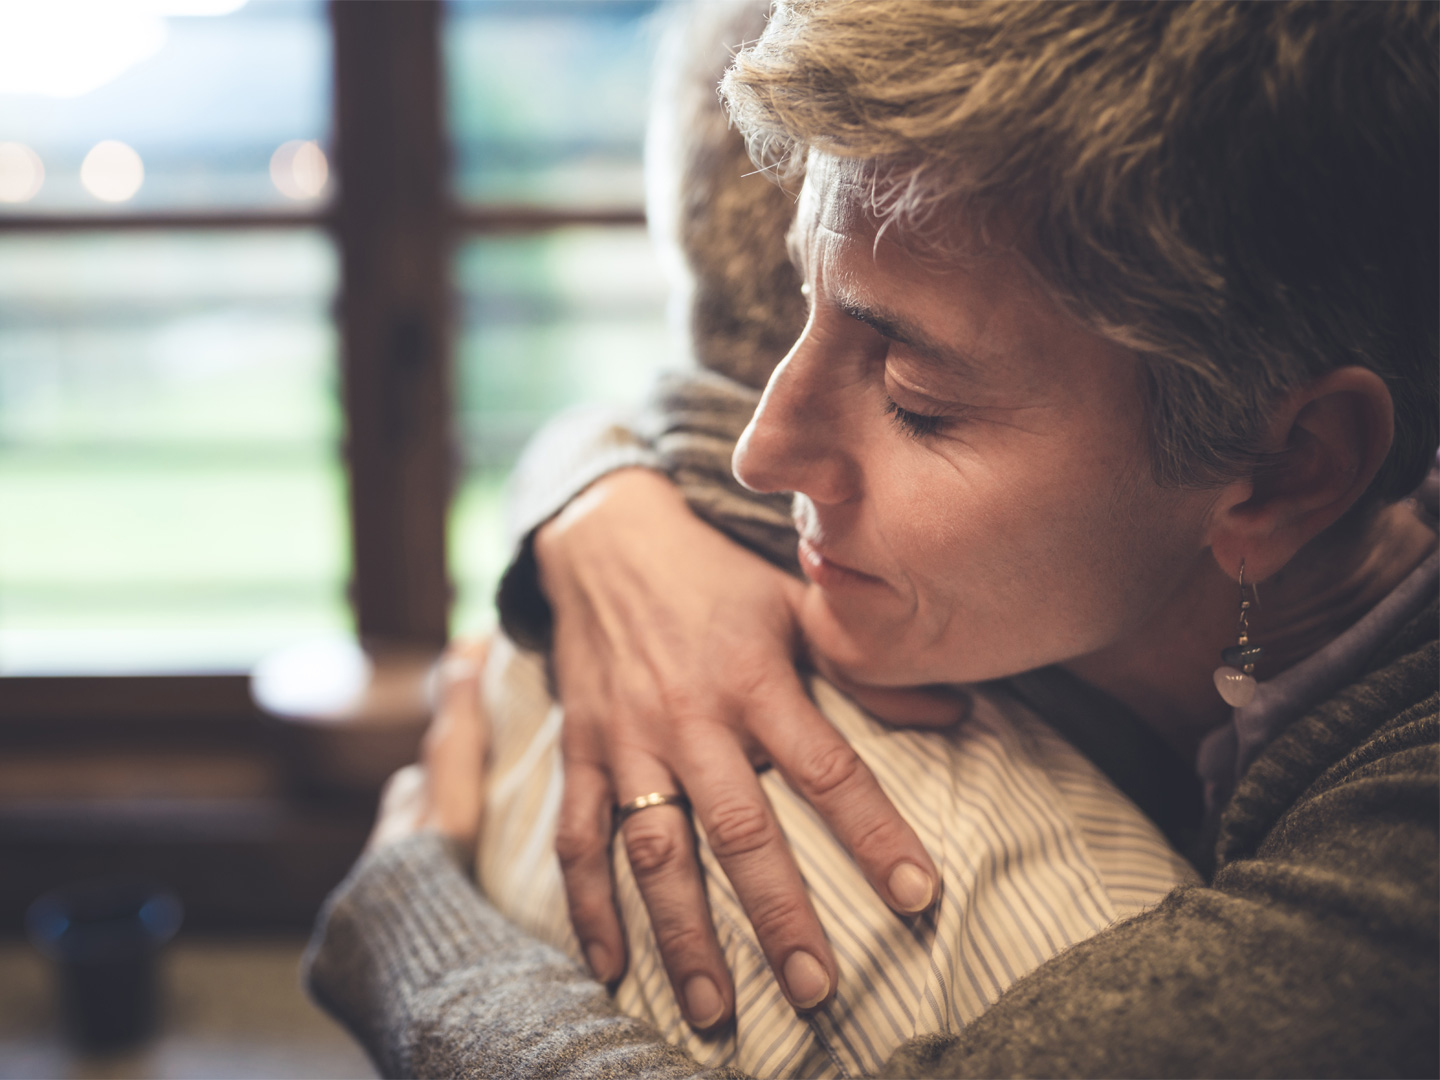 Cultivating Empathy And Compassion | Spontaneous Happiness